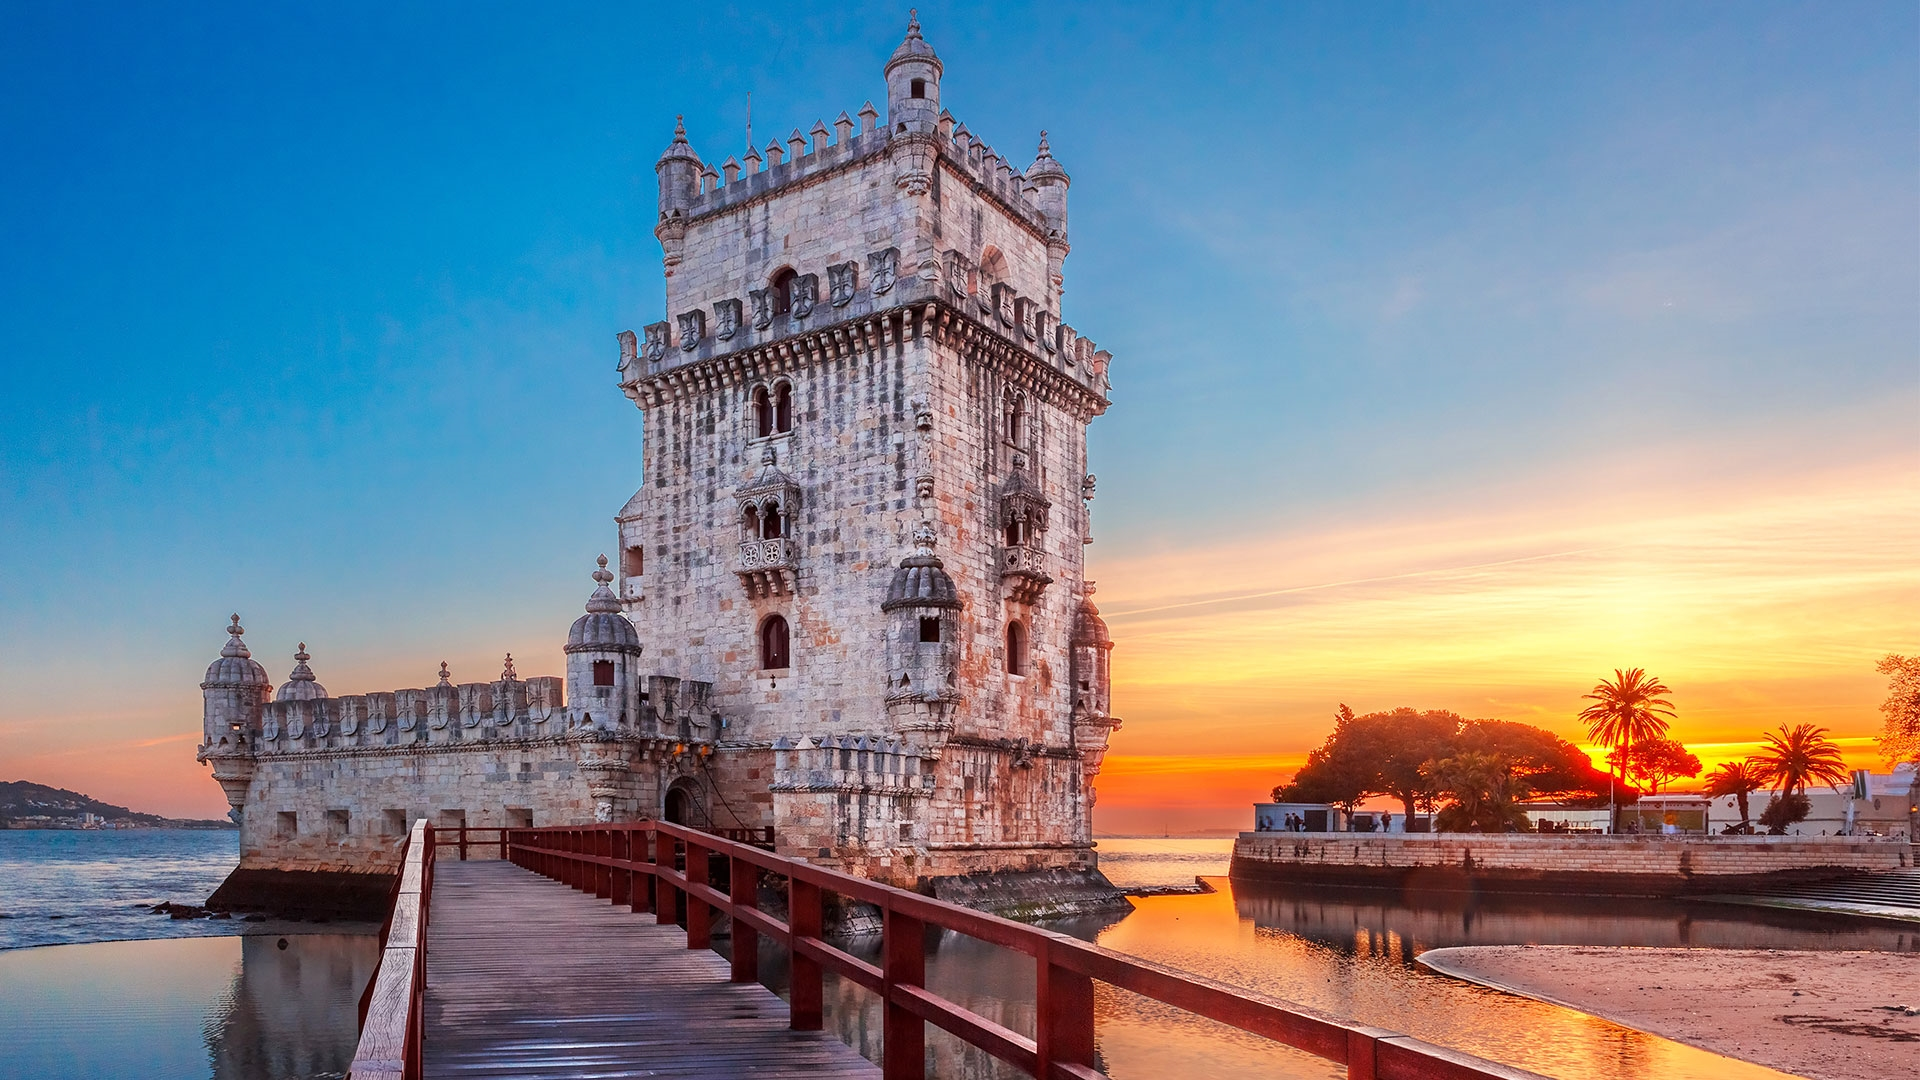 Discover The Most Amazing Historical Places In Portugal  discover Discover The Most Amazing Historical Places In Portugal 20190307143321